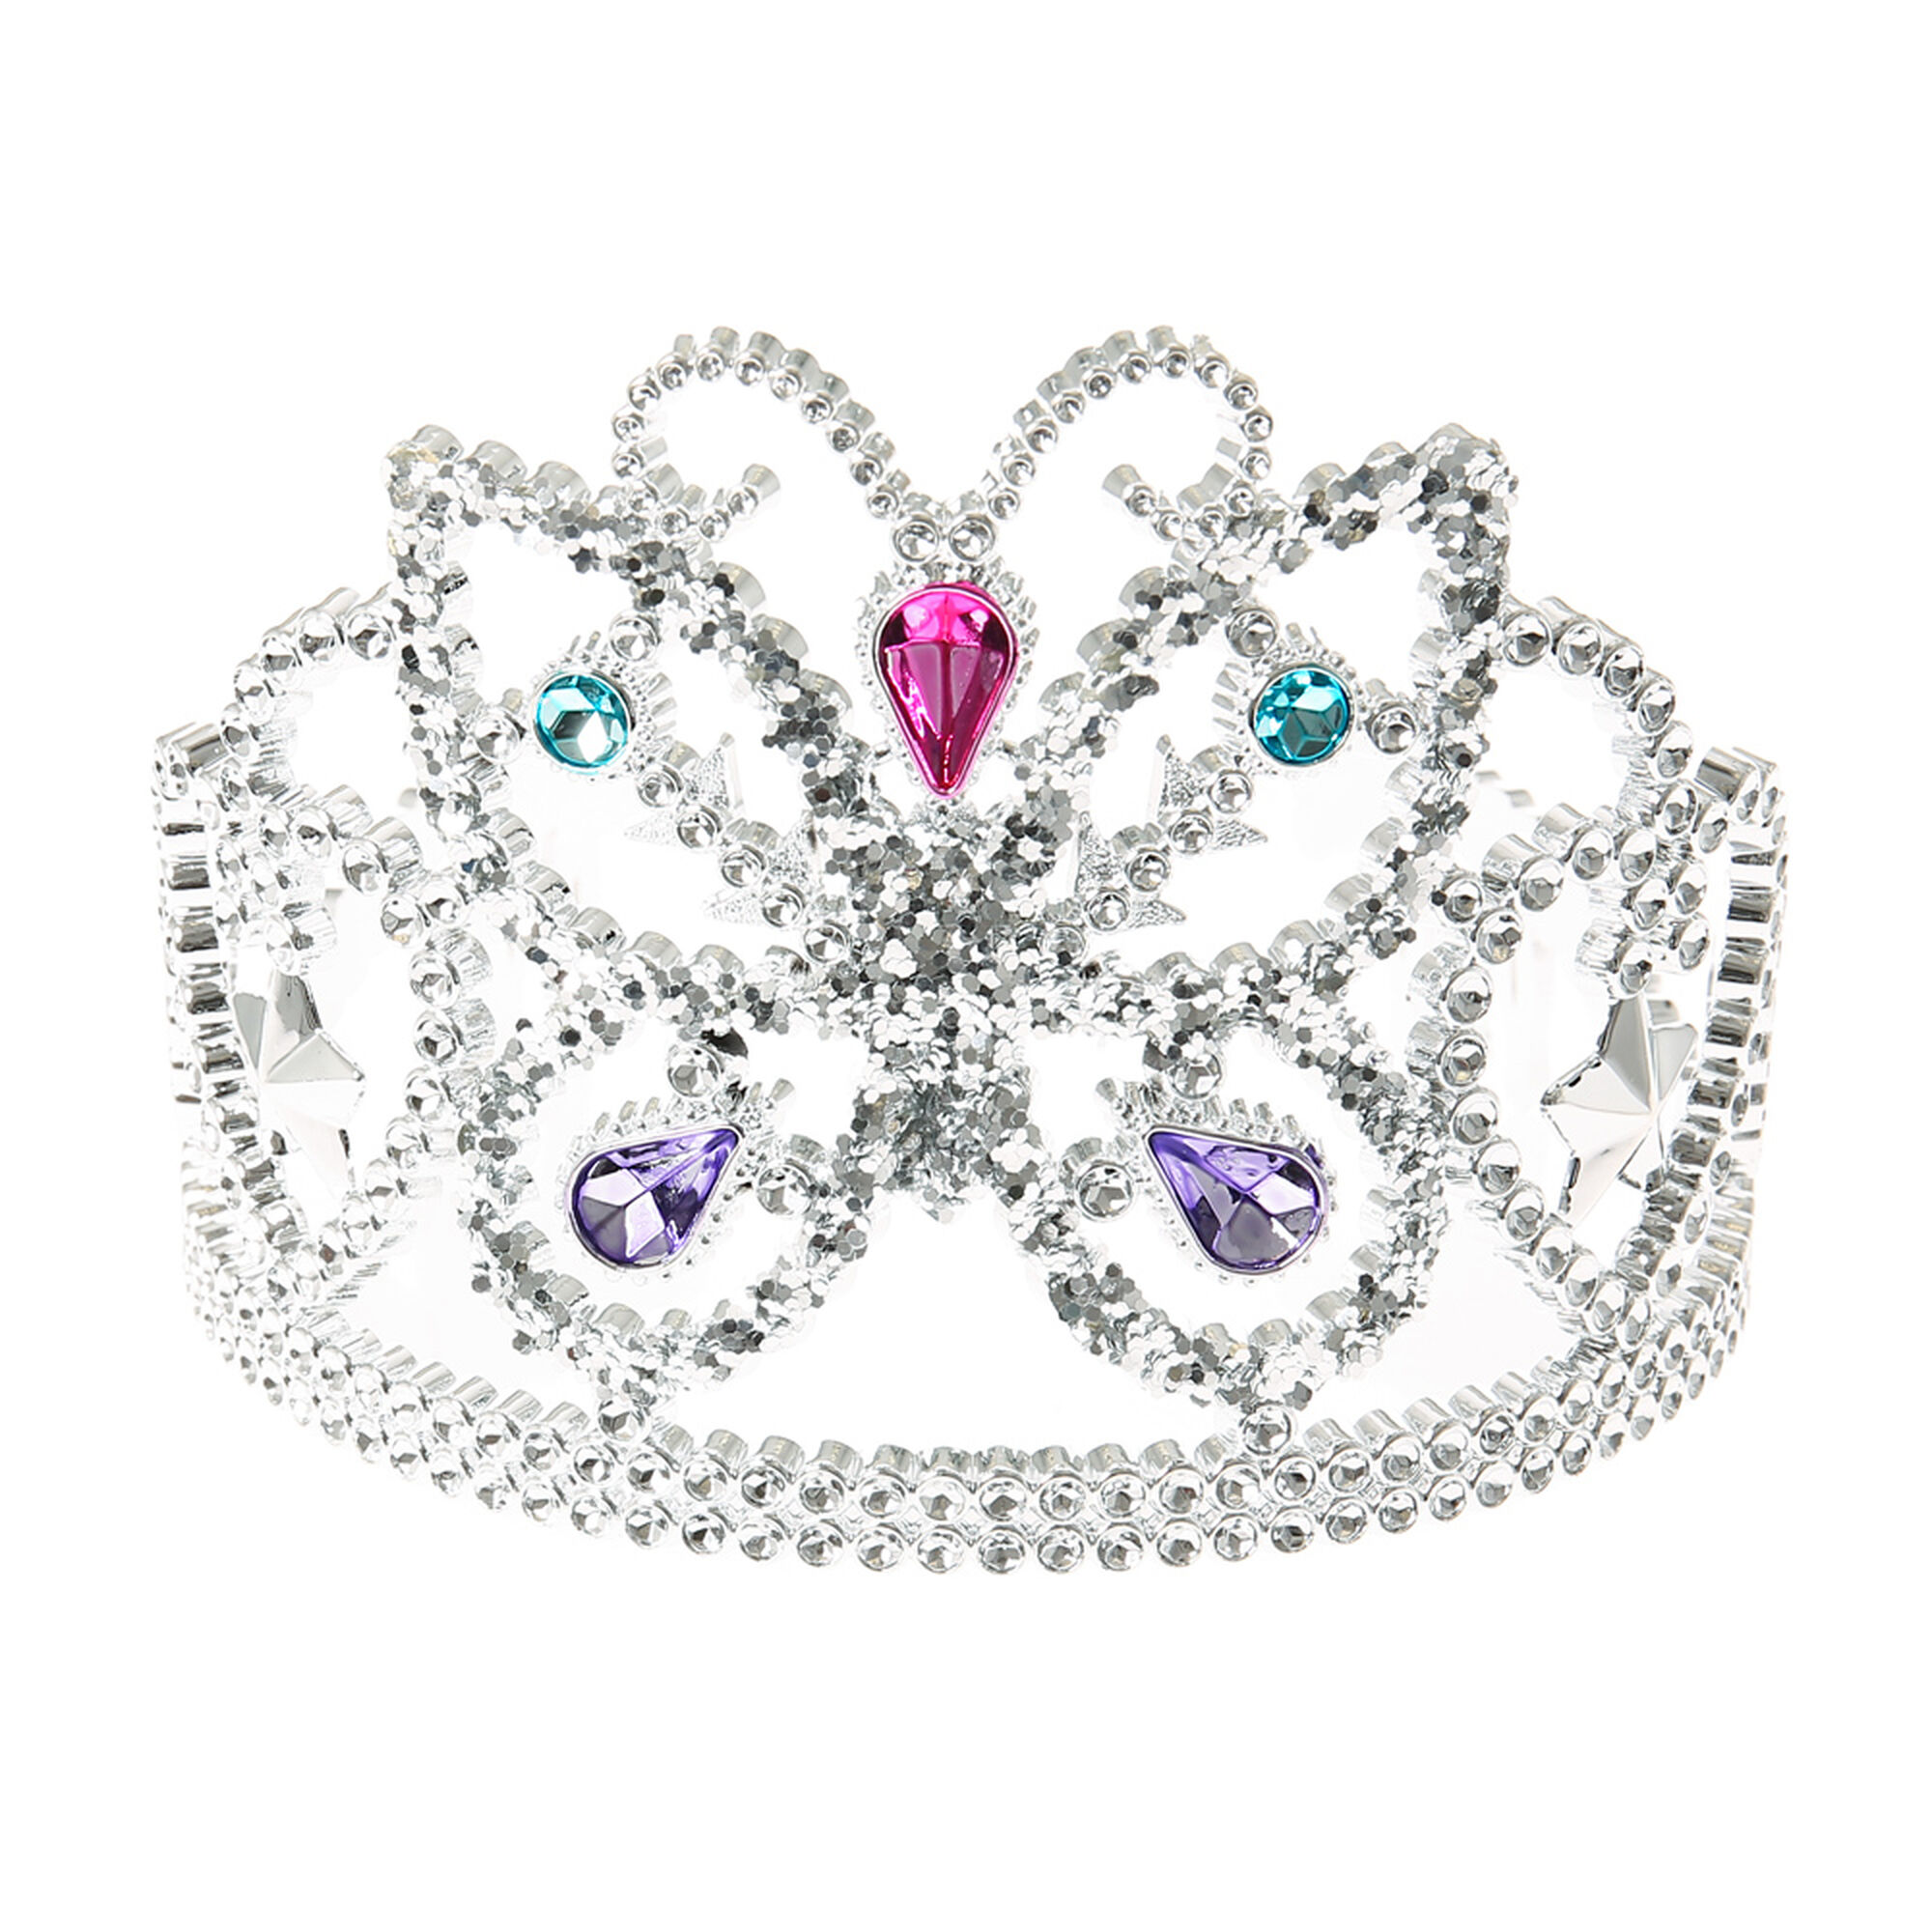 Crown, King Crown Hat; King Crowns for Kids or Adults; King Crown 2-Pack of Princess Crown Tiara and Imitation Scepter - Princess Fairy Wand and Imitation Royal Rhinestone Crown for Kids, Little Girls, Gold. by Blue Panda. $ $ 11 99 Prime. FREE Shipping on eligible orders.